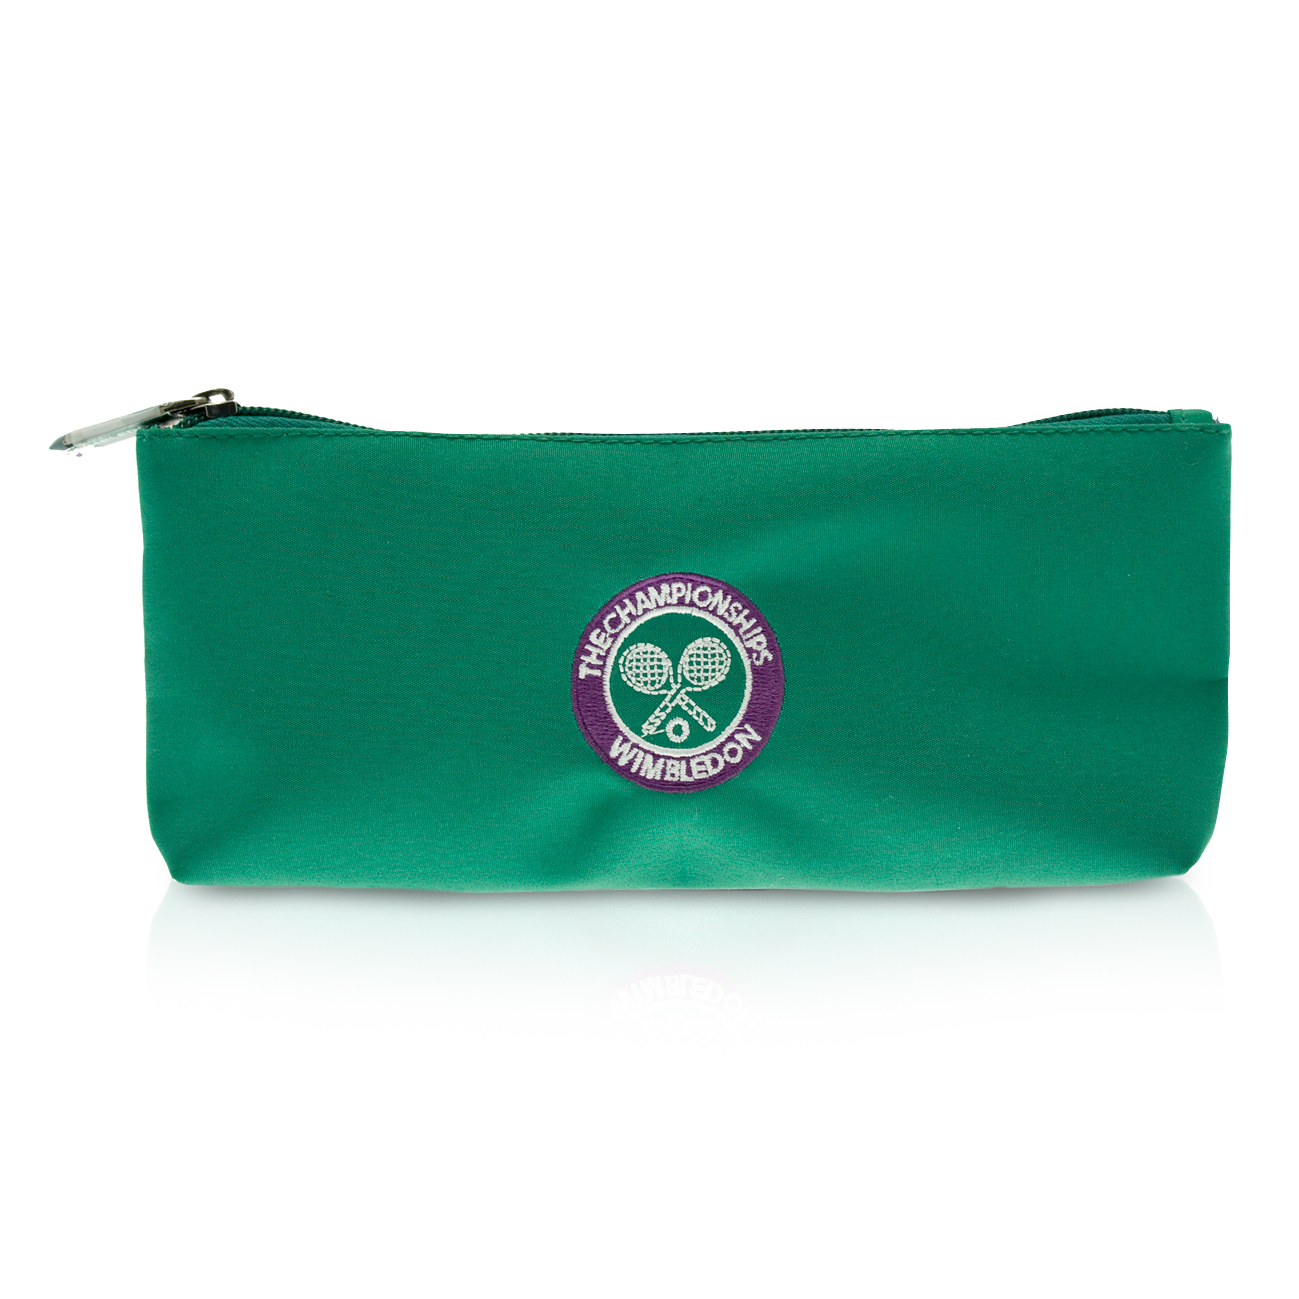 Wimbledon 2 Tone Pencil Case - Green/Purple